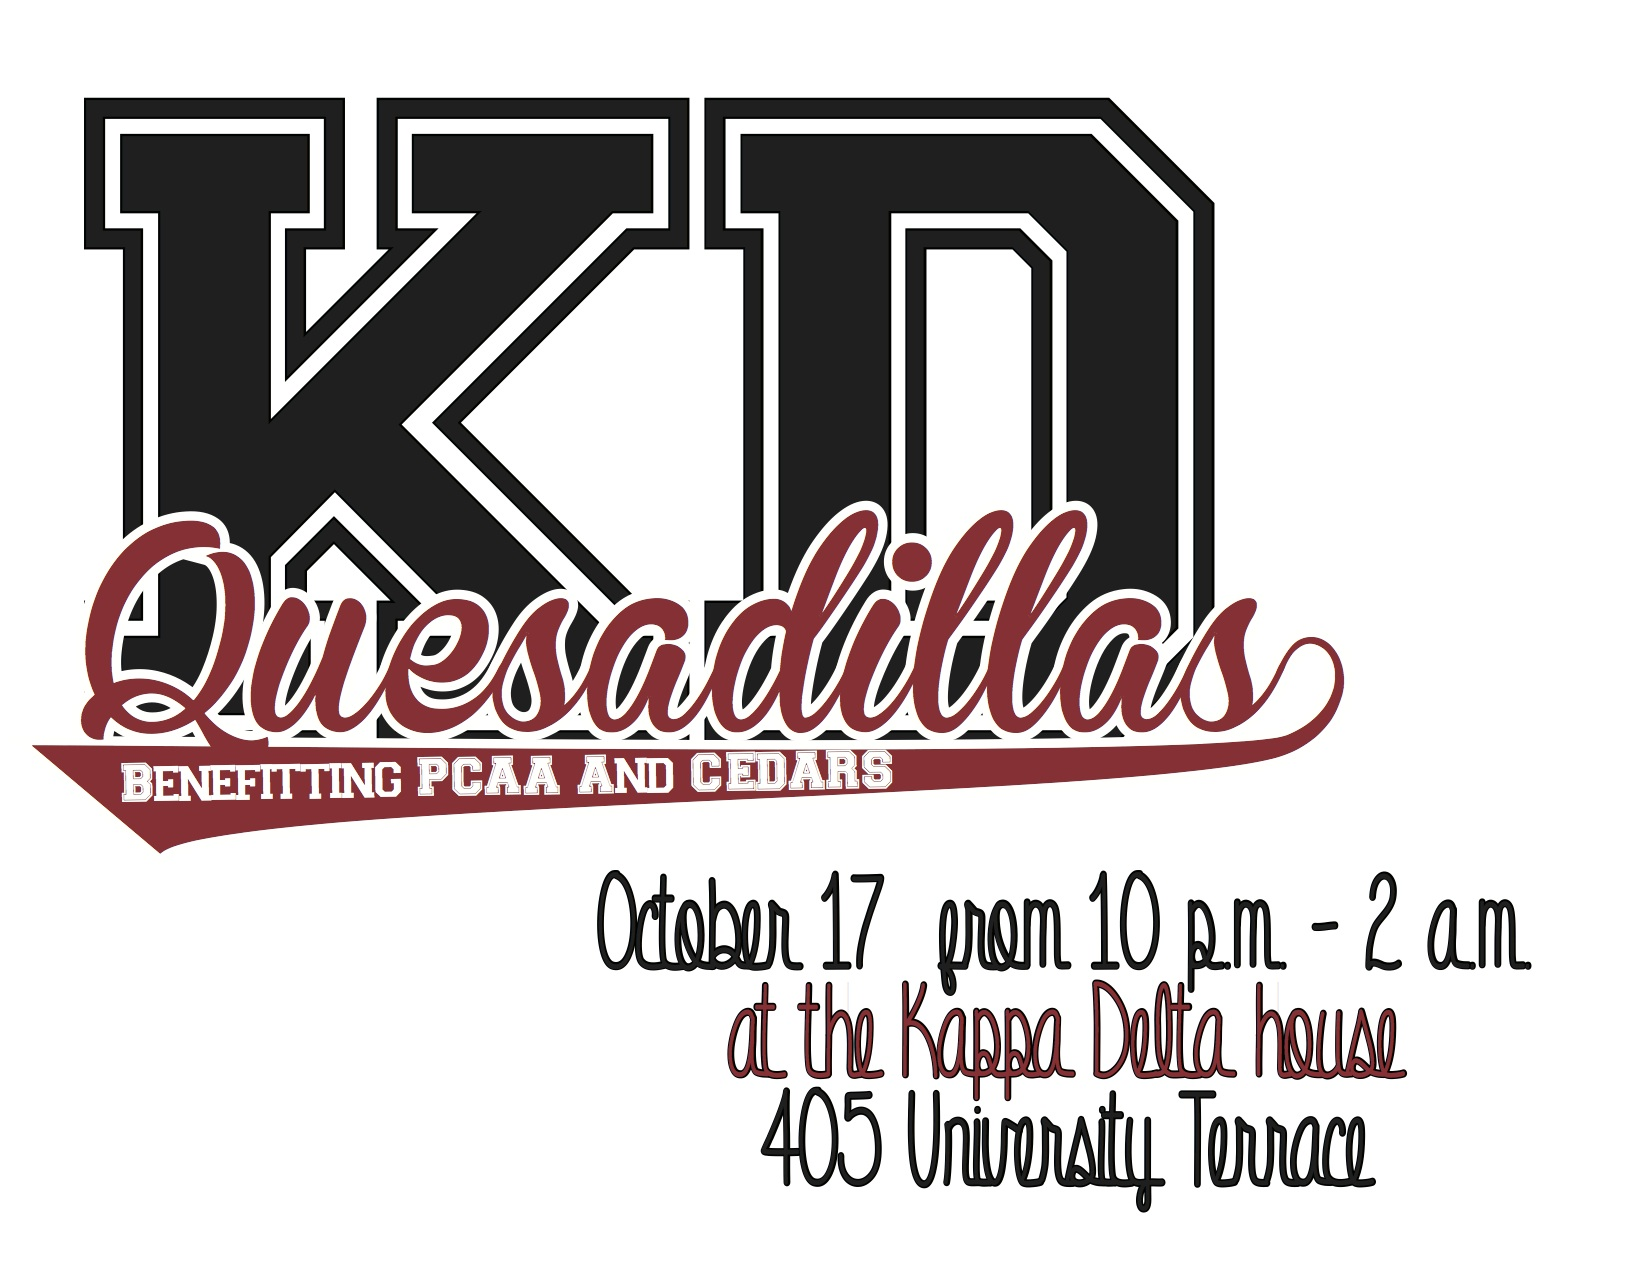 Kappa Delta Quesadillas, benefitting Prevent Child Abuse America and CEDARS, takes place October 17th